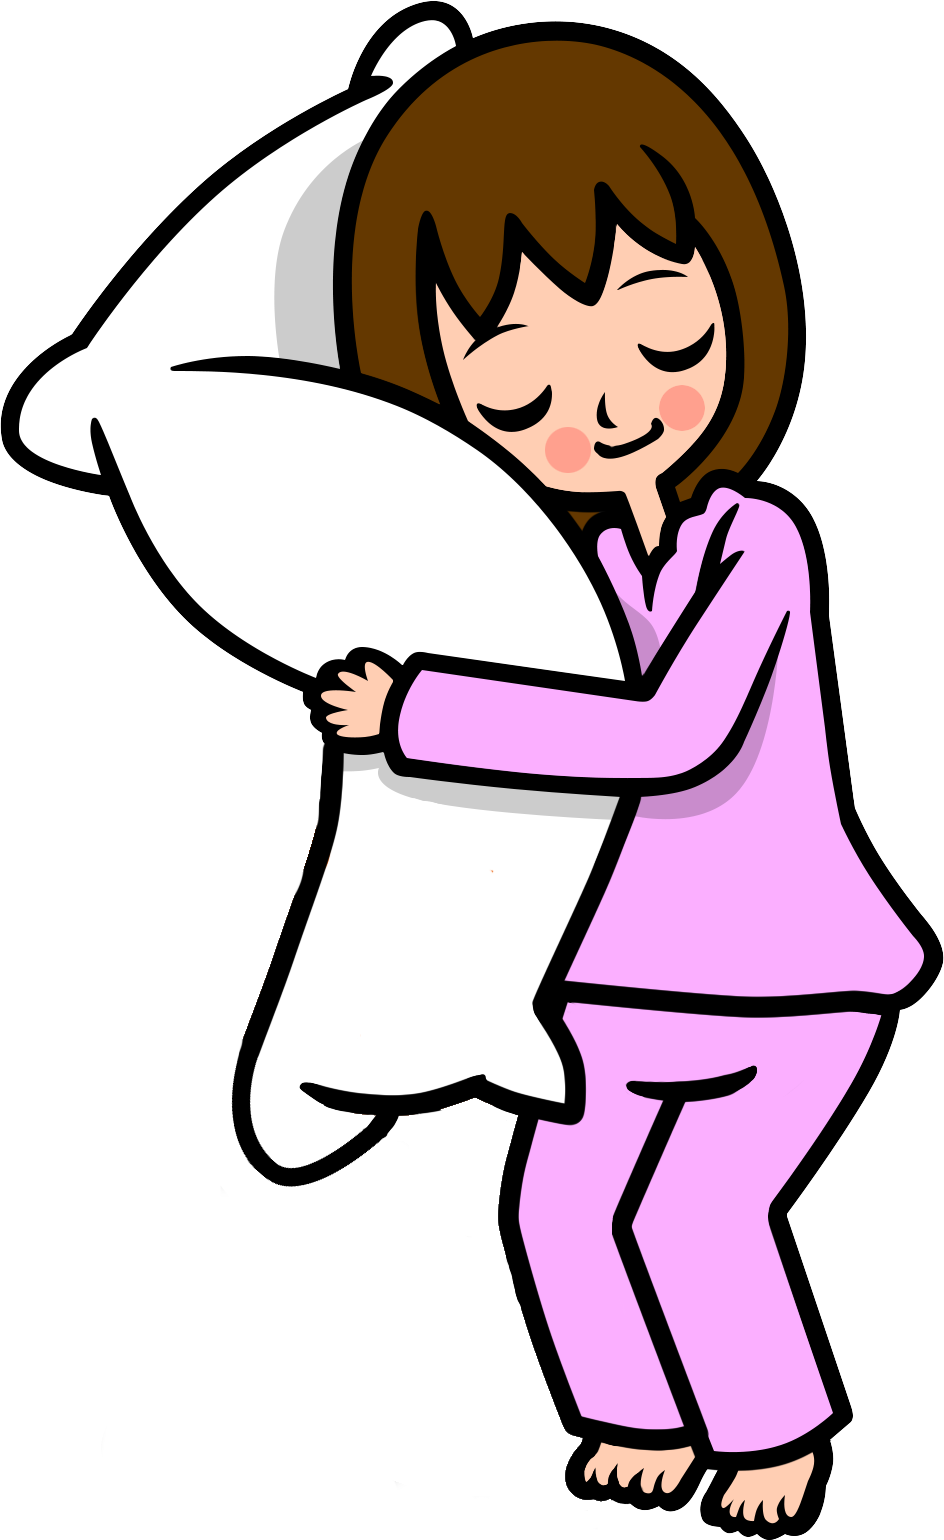 Pajama drawing clipart. At getdrawings com free